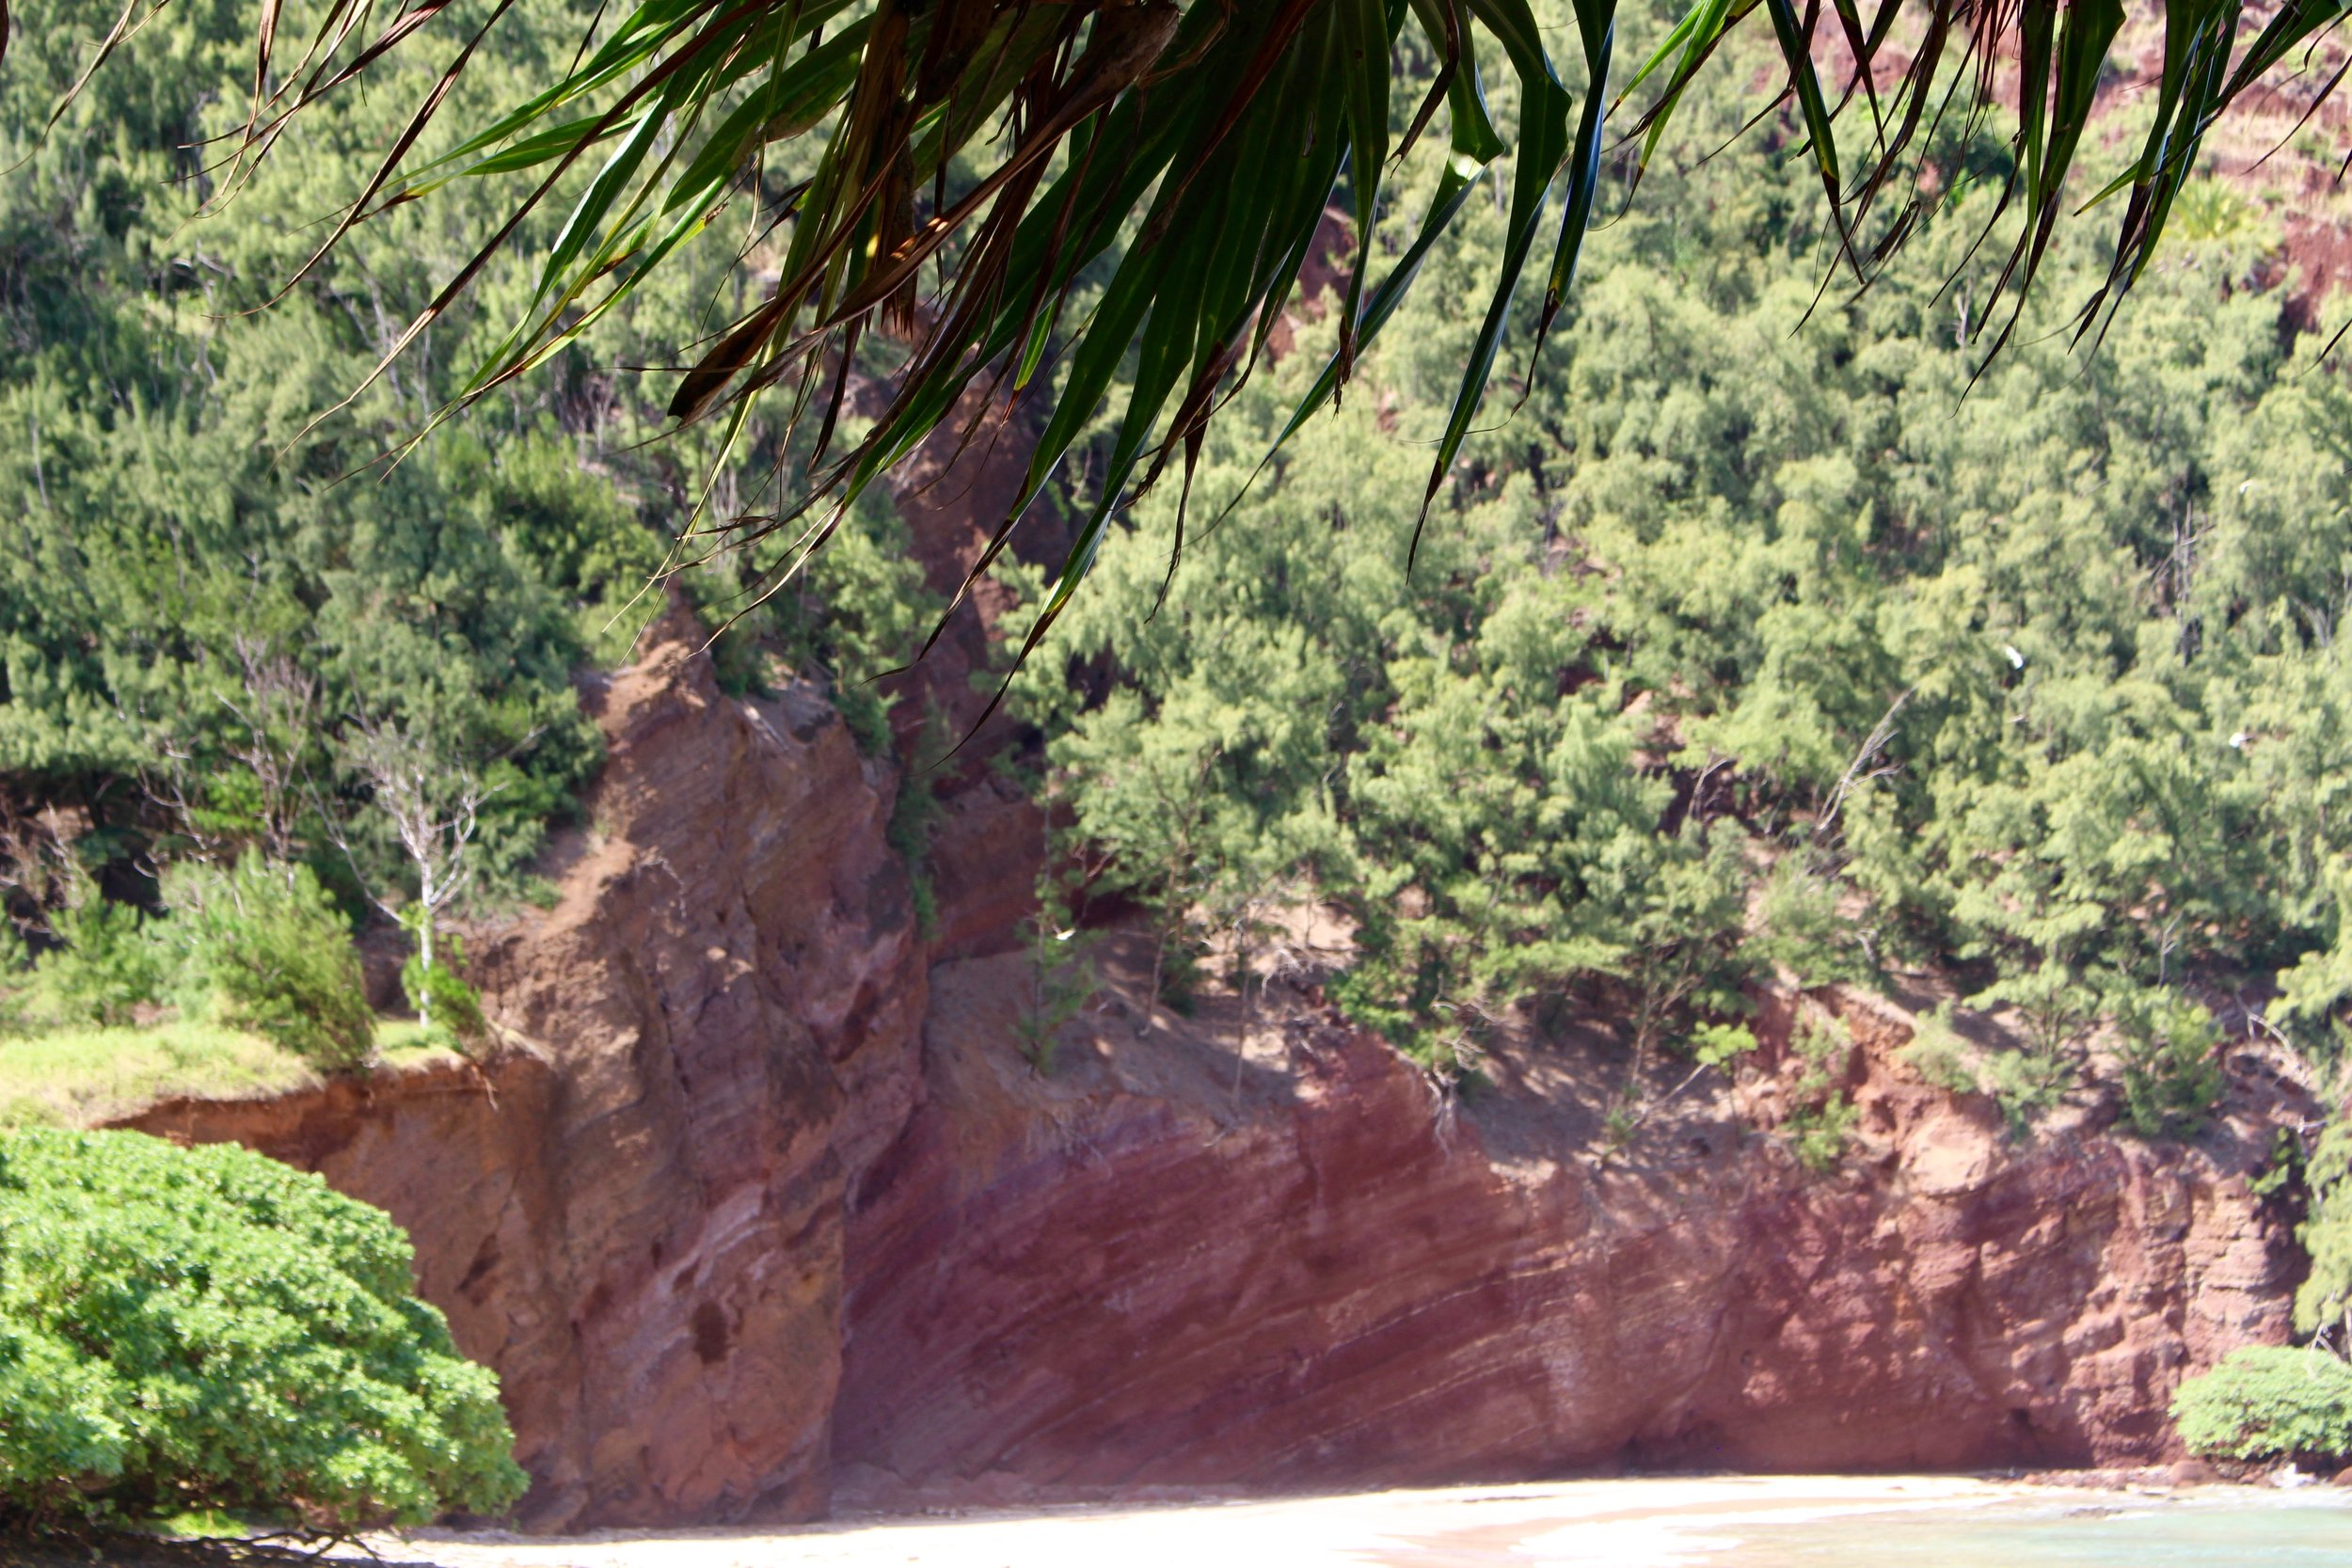 These rocks tower over Koki Beach and turn the sand a shade of red.